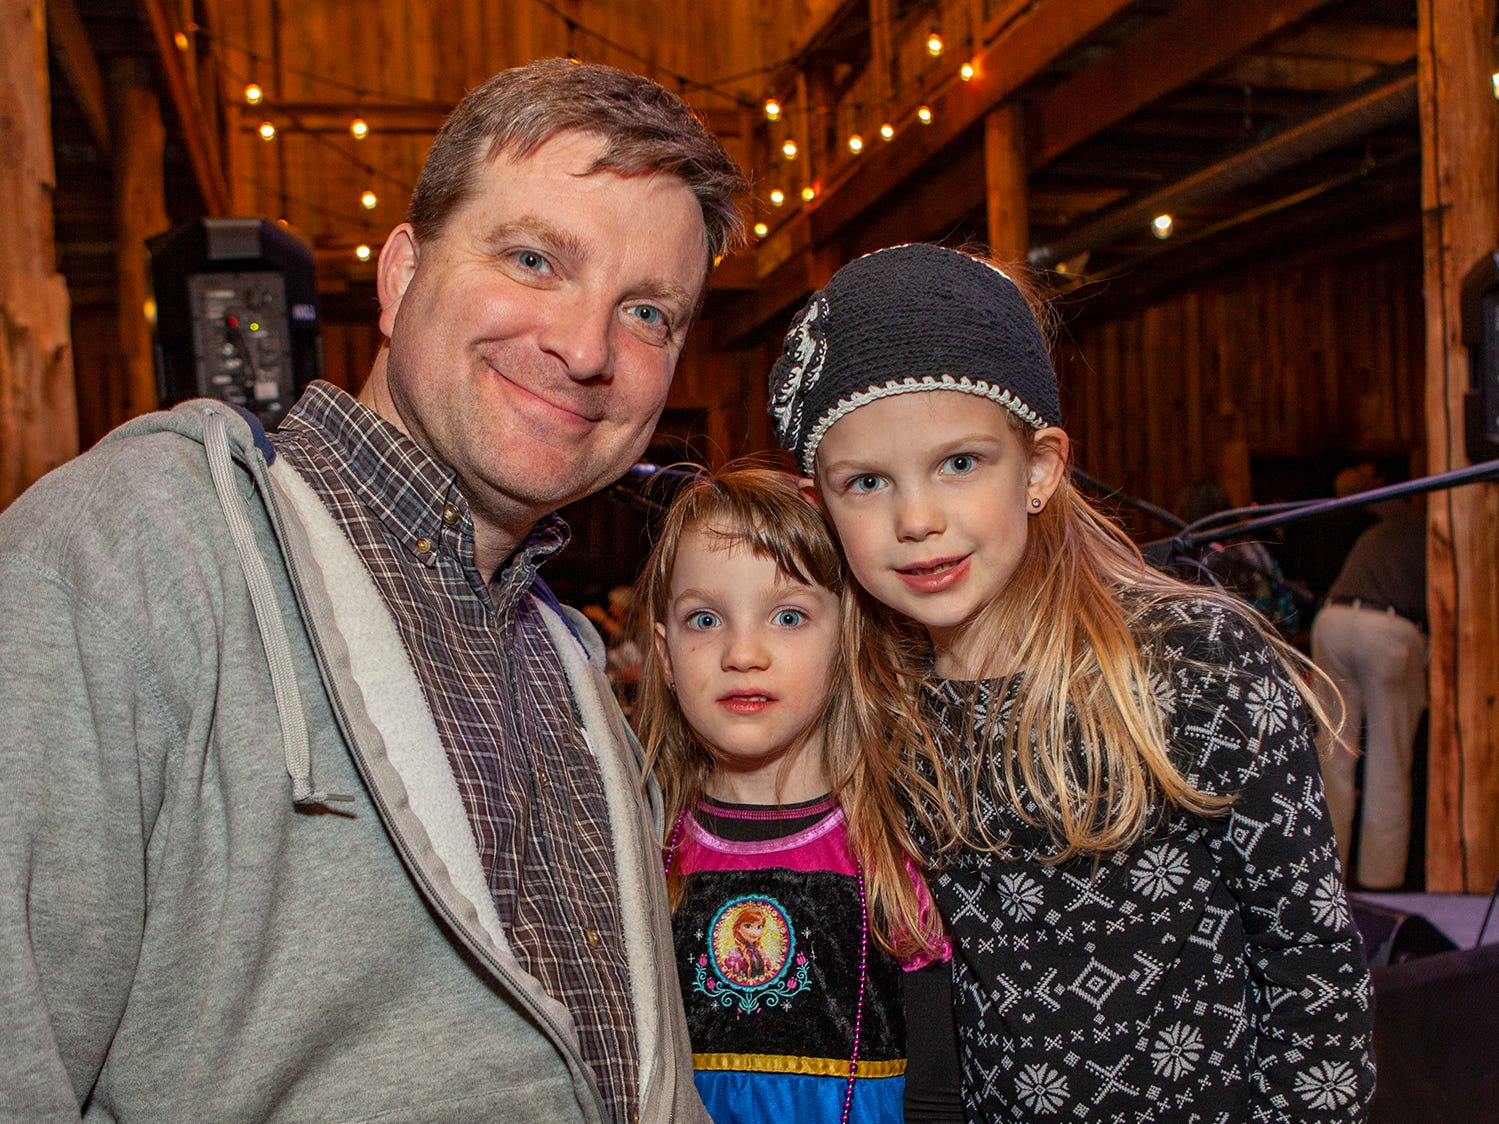 Jason, Elin and Ella Parker enjoyed some family time at the second night of Bluebird in the Boro, held March 4-6, 2019. A benefit for Alive Hospice, the event was held at The Grove at Williamson Place in Murfreesboro.